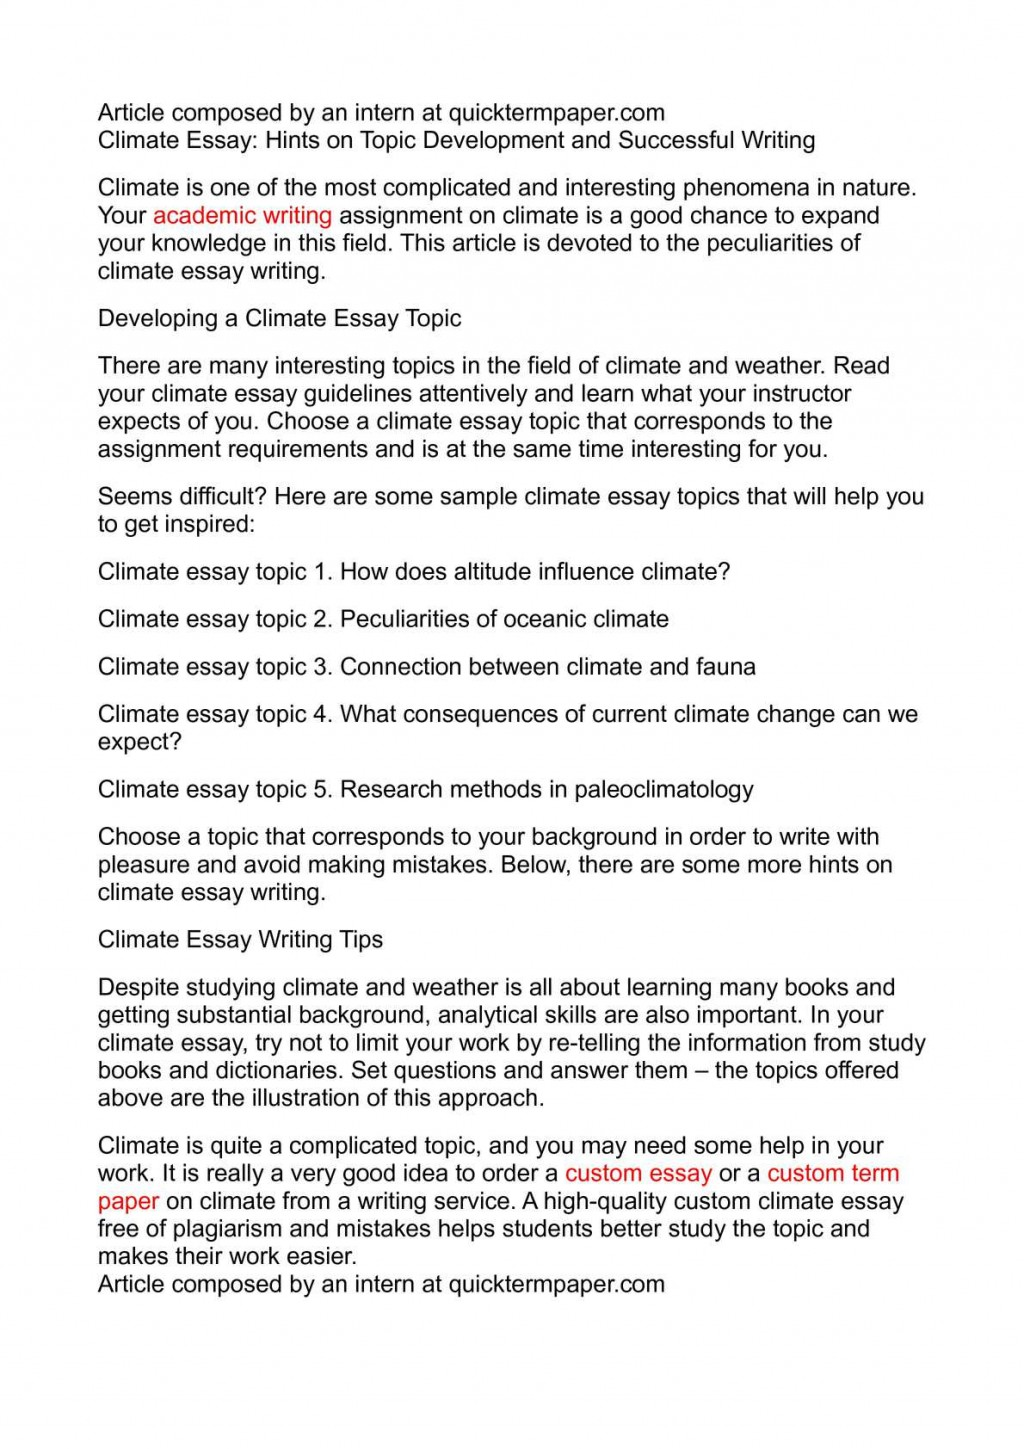 005 Essay About Learning From Mistakes P1 Fascinating My Your Large